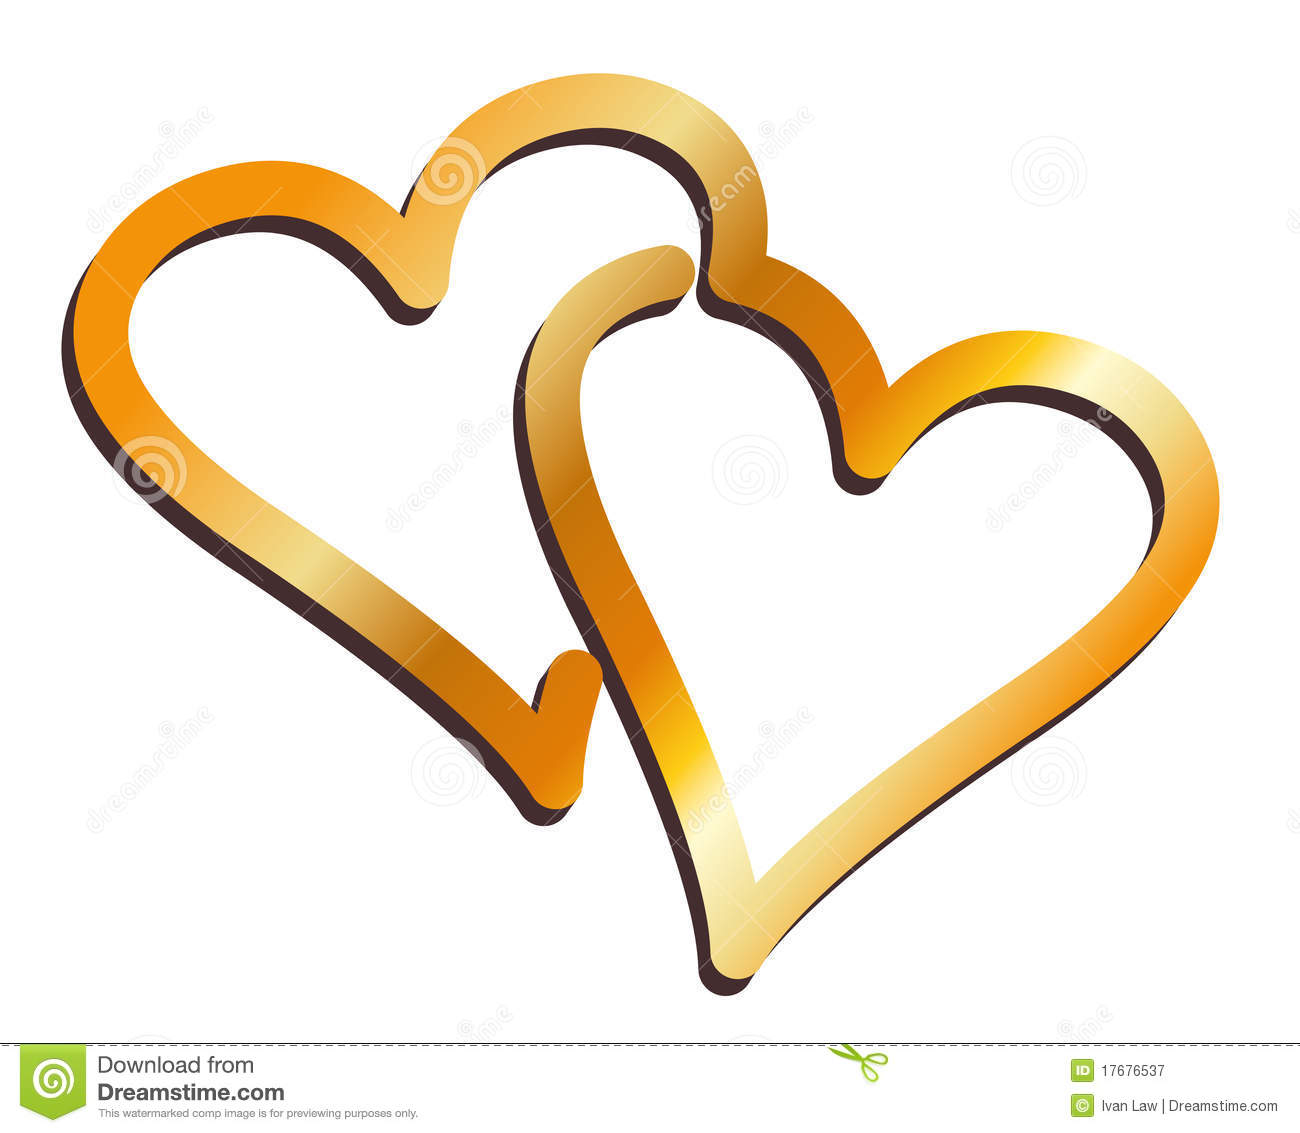 Two stylised hearts fused together and rendered in a gold metallic ...